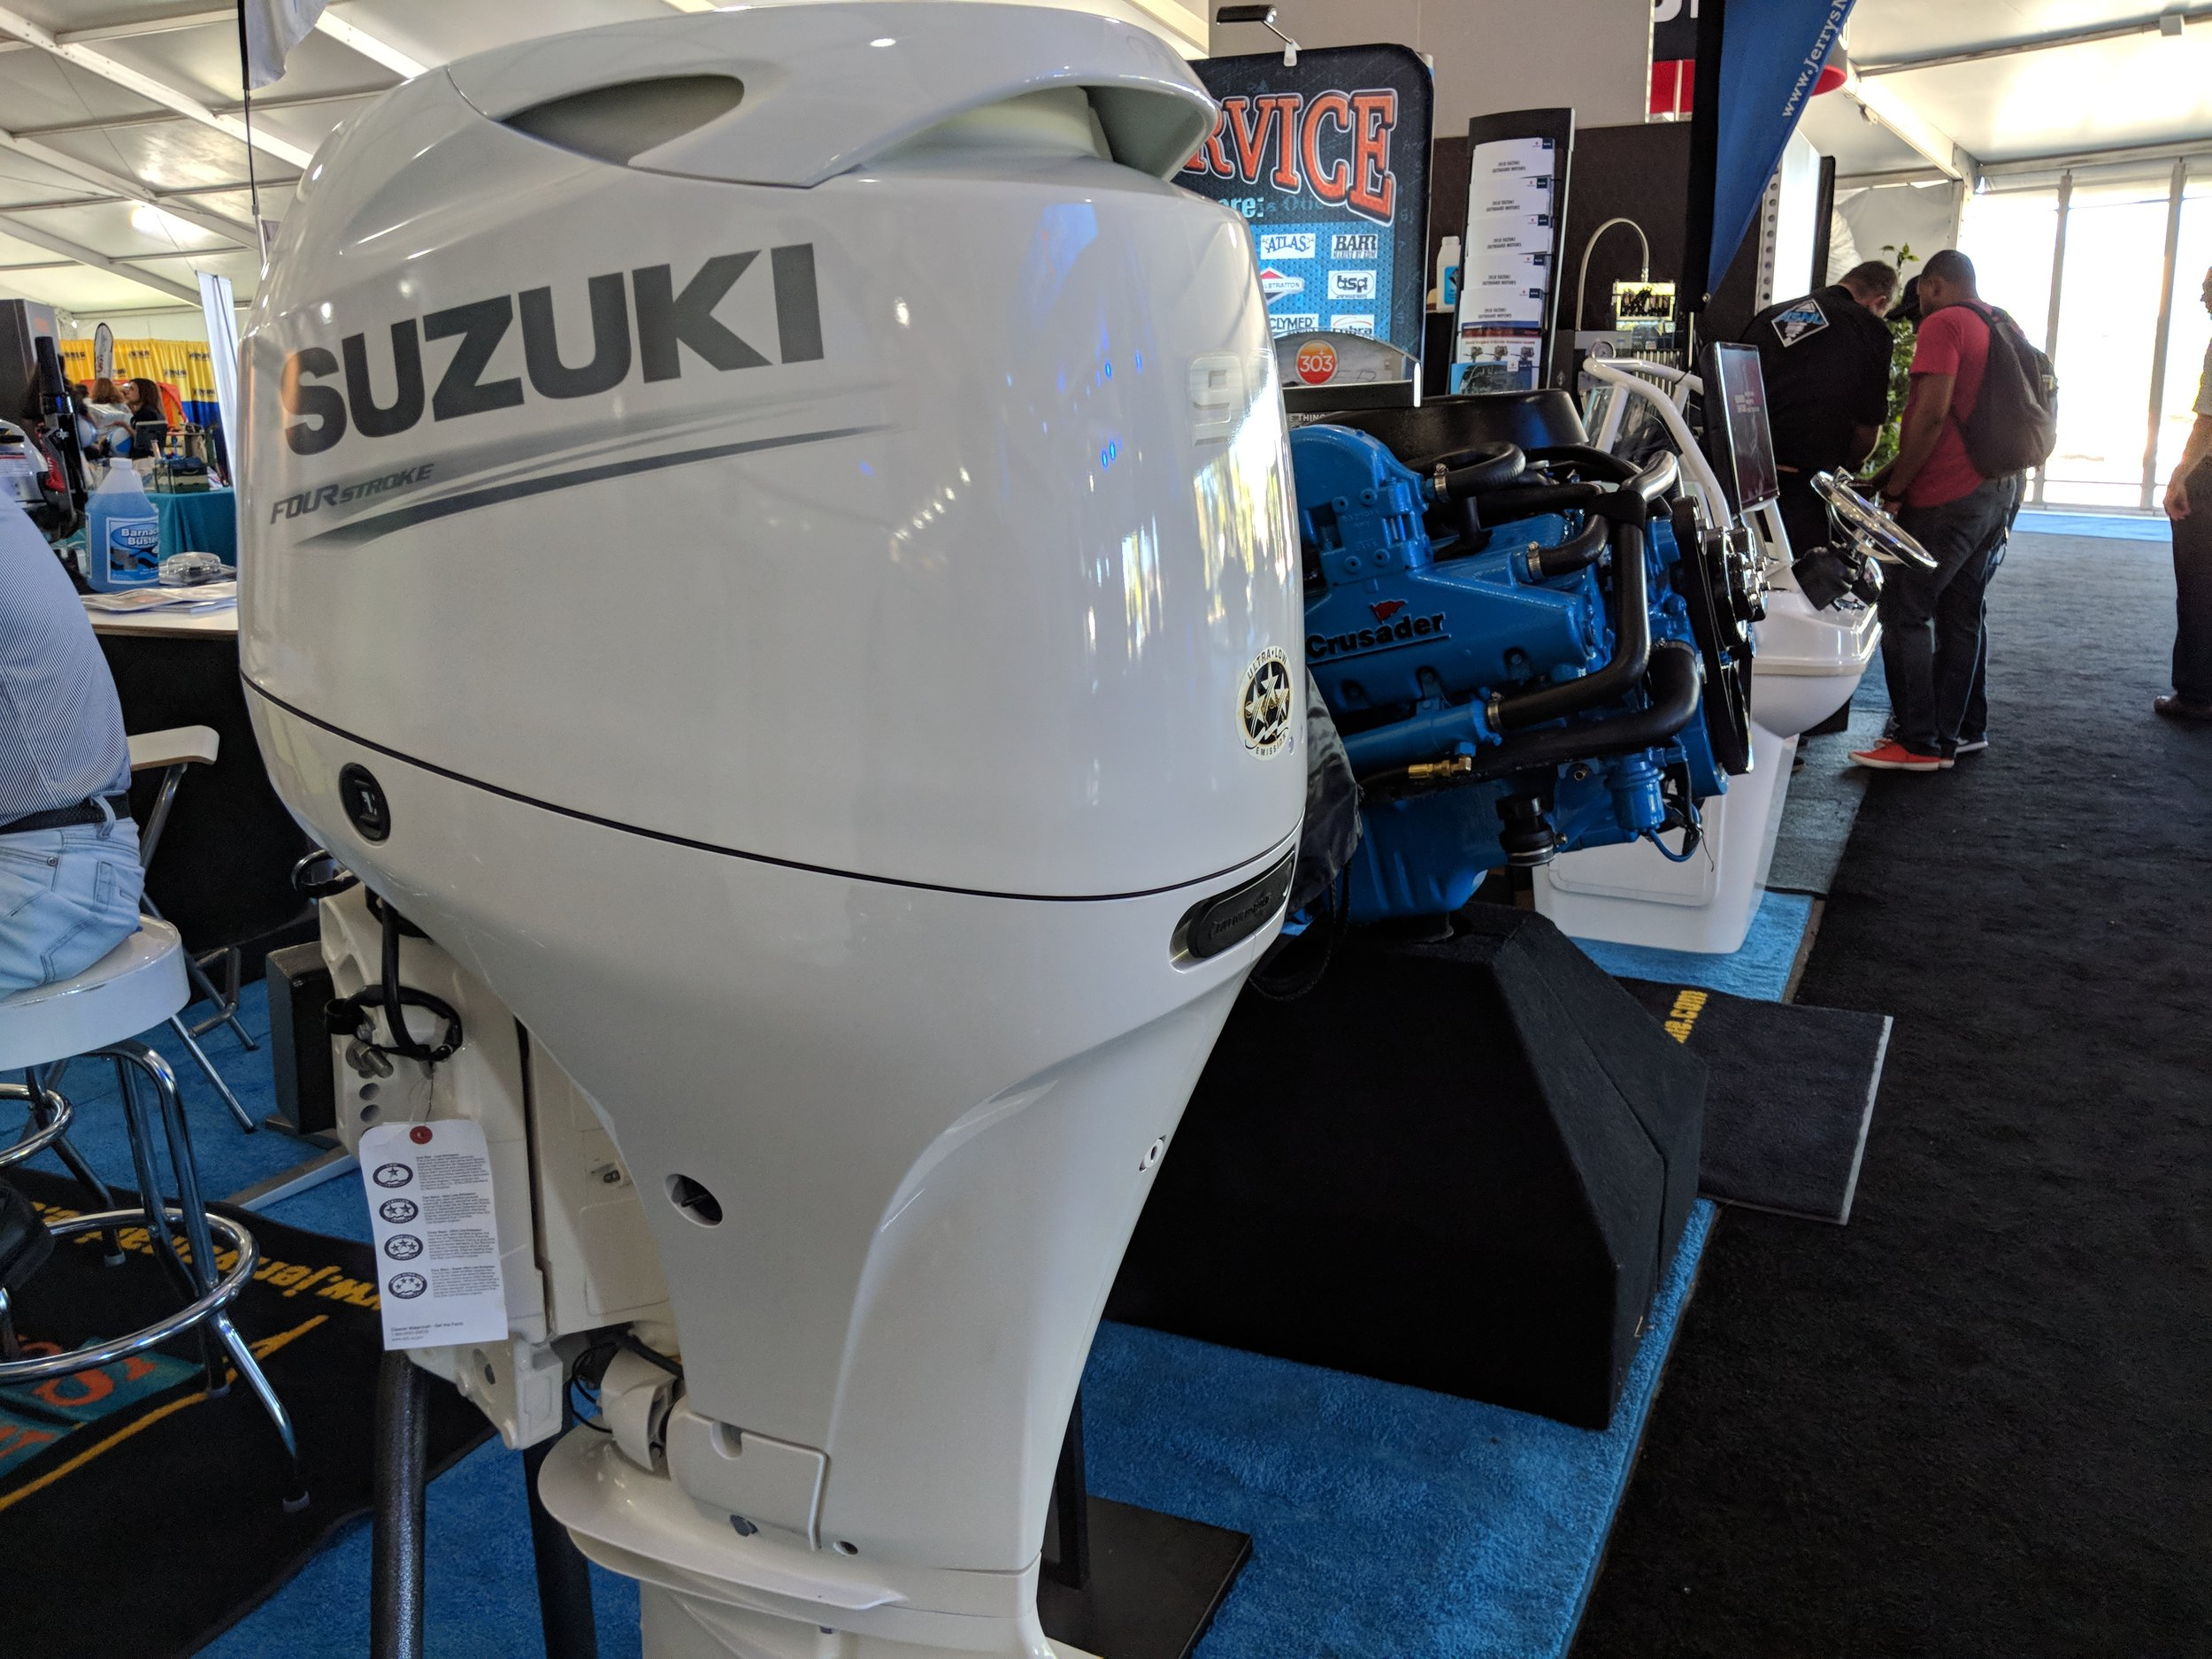 The Suzuki DF90 is one of the lightest 90 horsepower engines on the the market at 343 Lbs, and its 4 cylinder design makes it a good option for light small hulls.